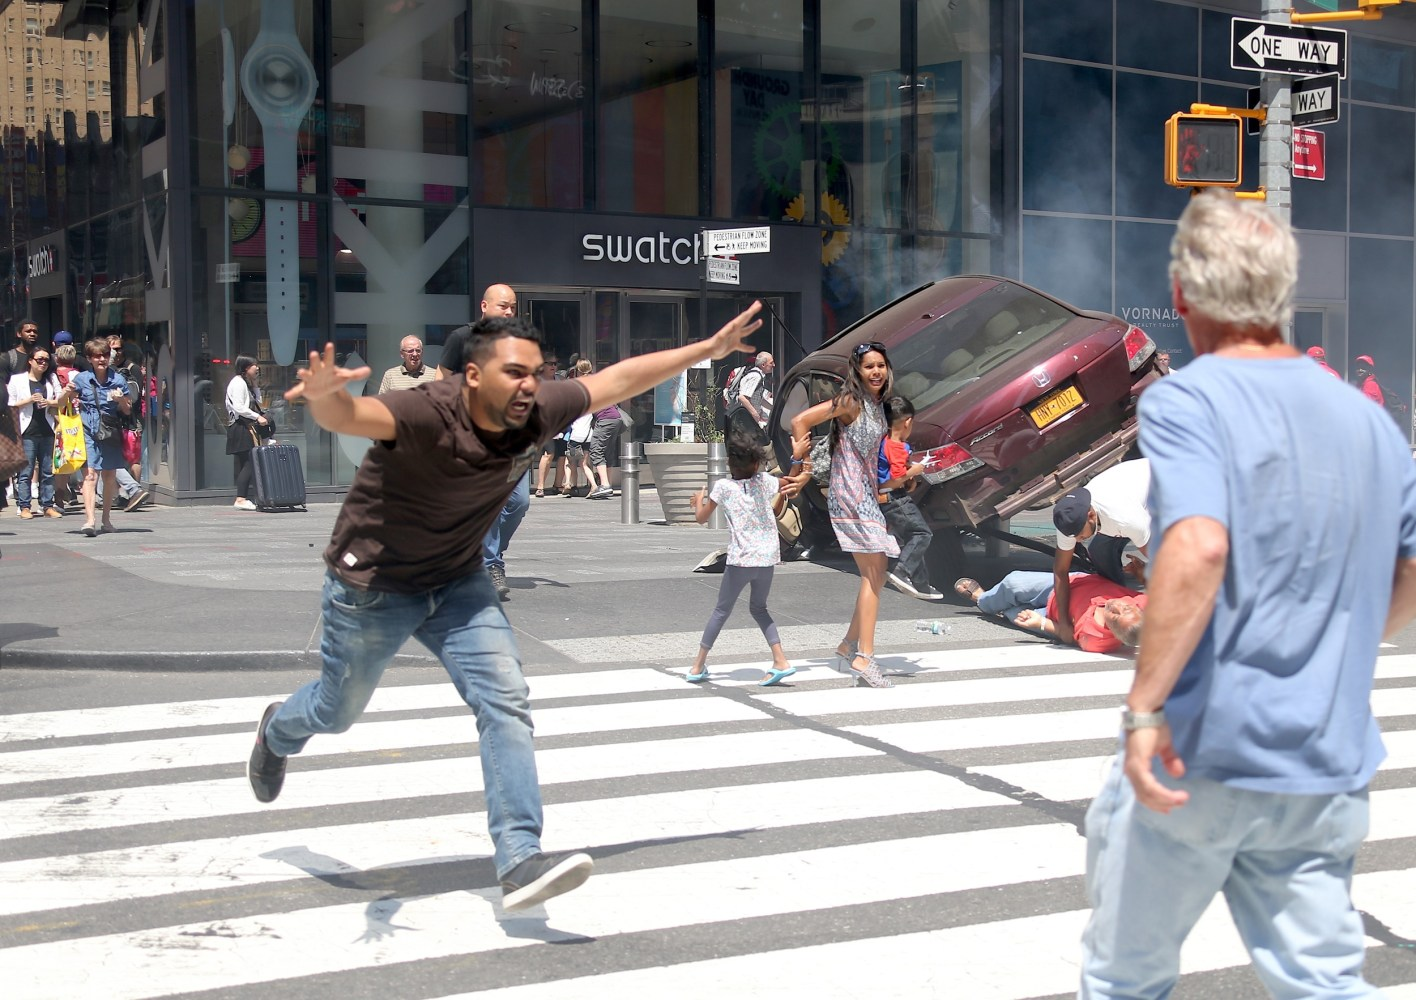 Car Rams Into Pedestrians in NYC's Times Square, Killing at Least 1